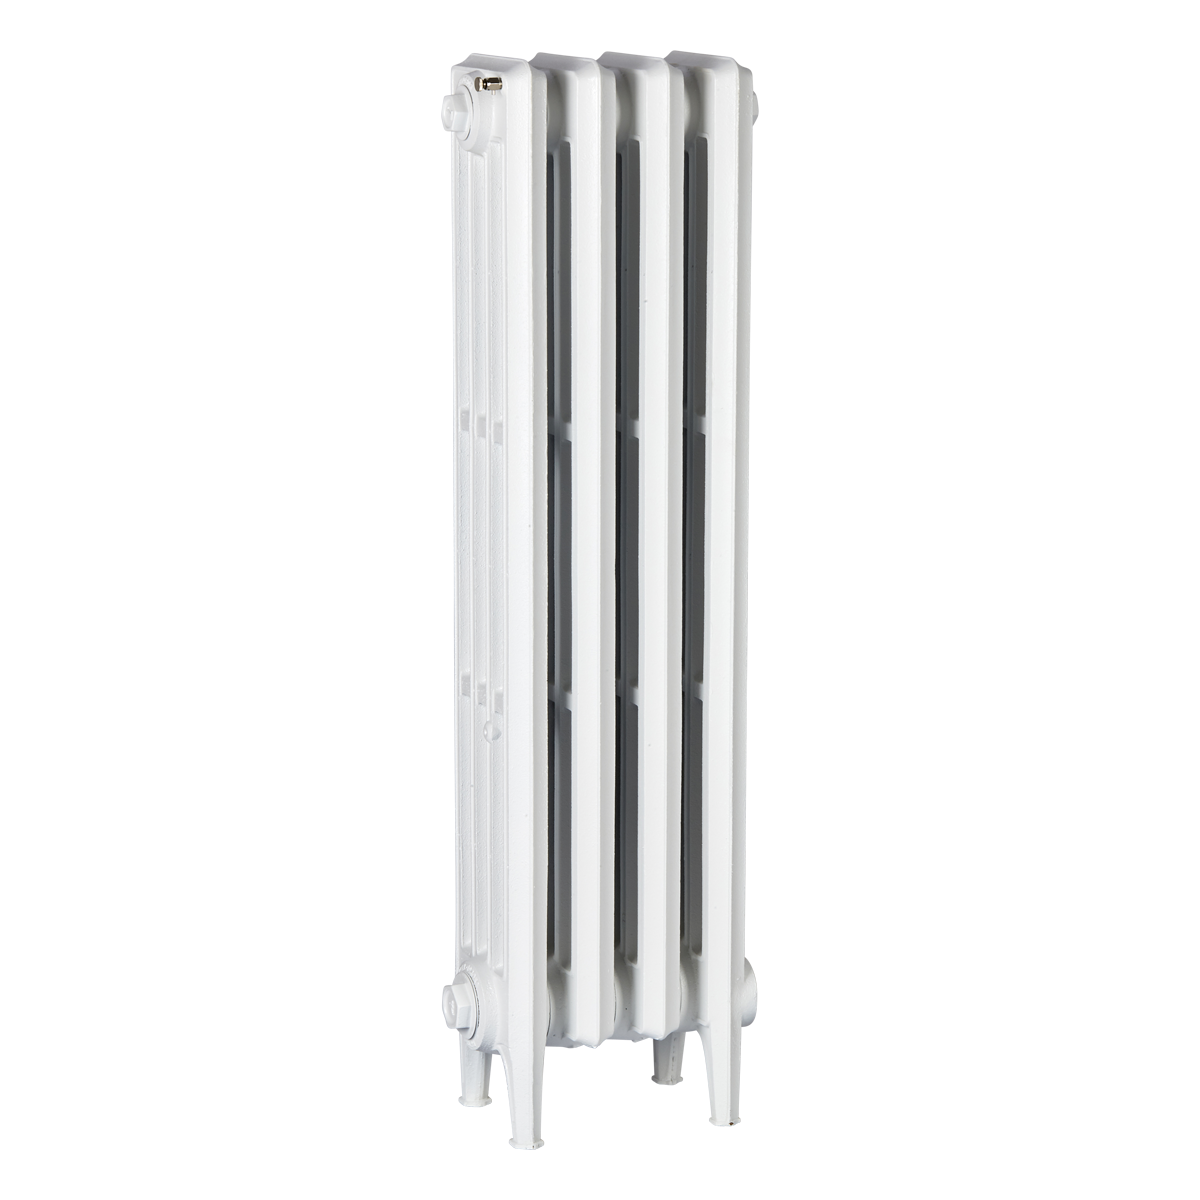 Ironworks Radiators Inc. classic column radiator